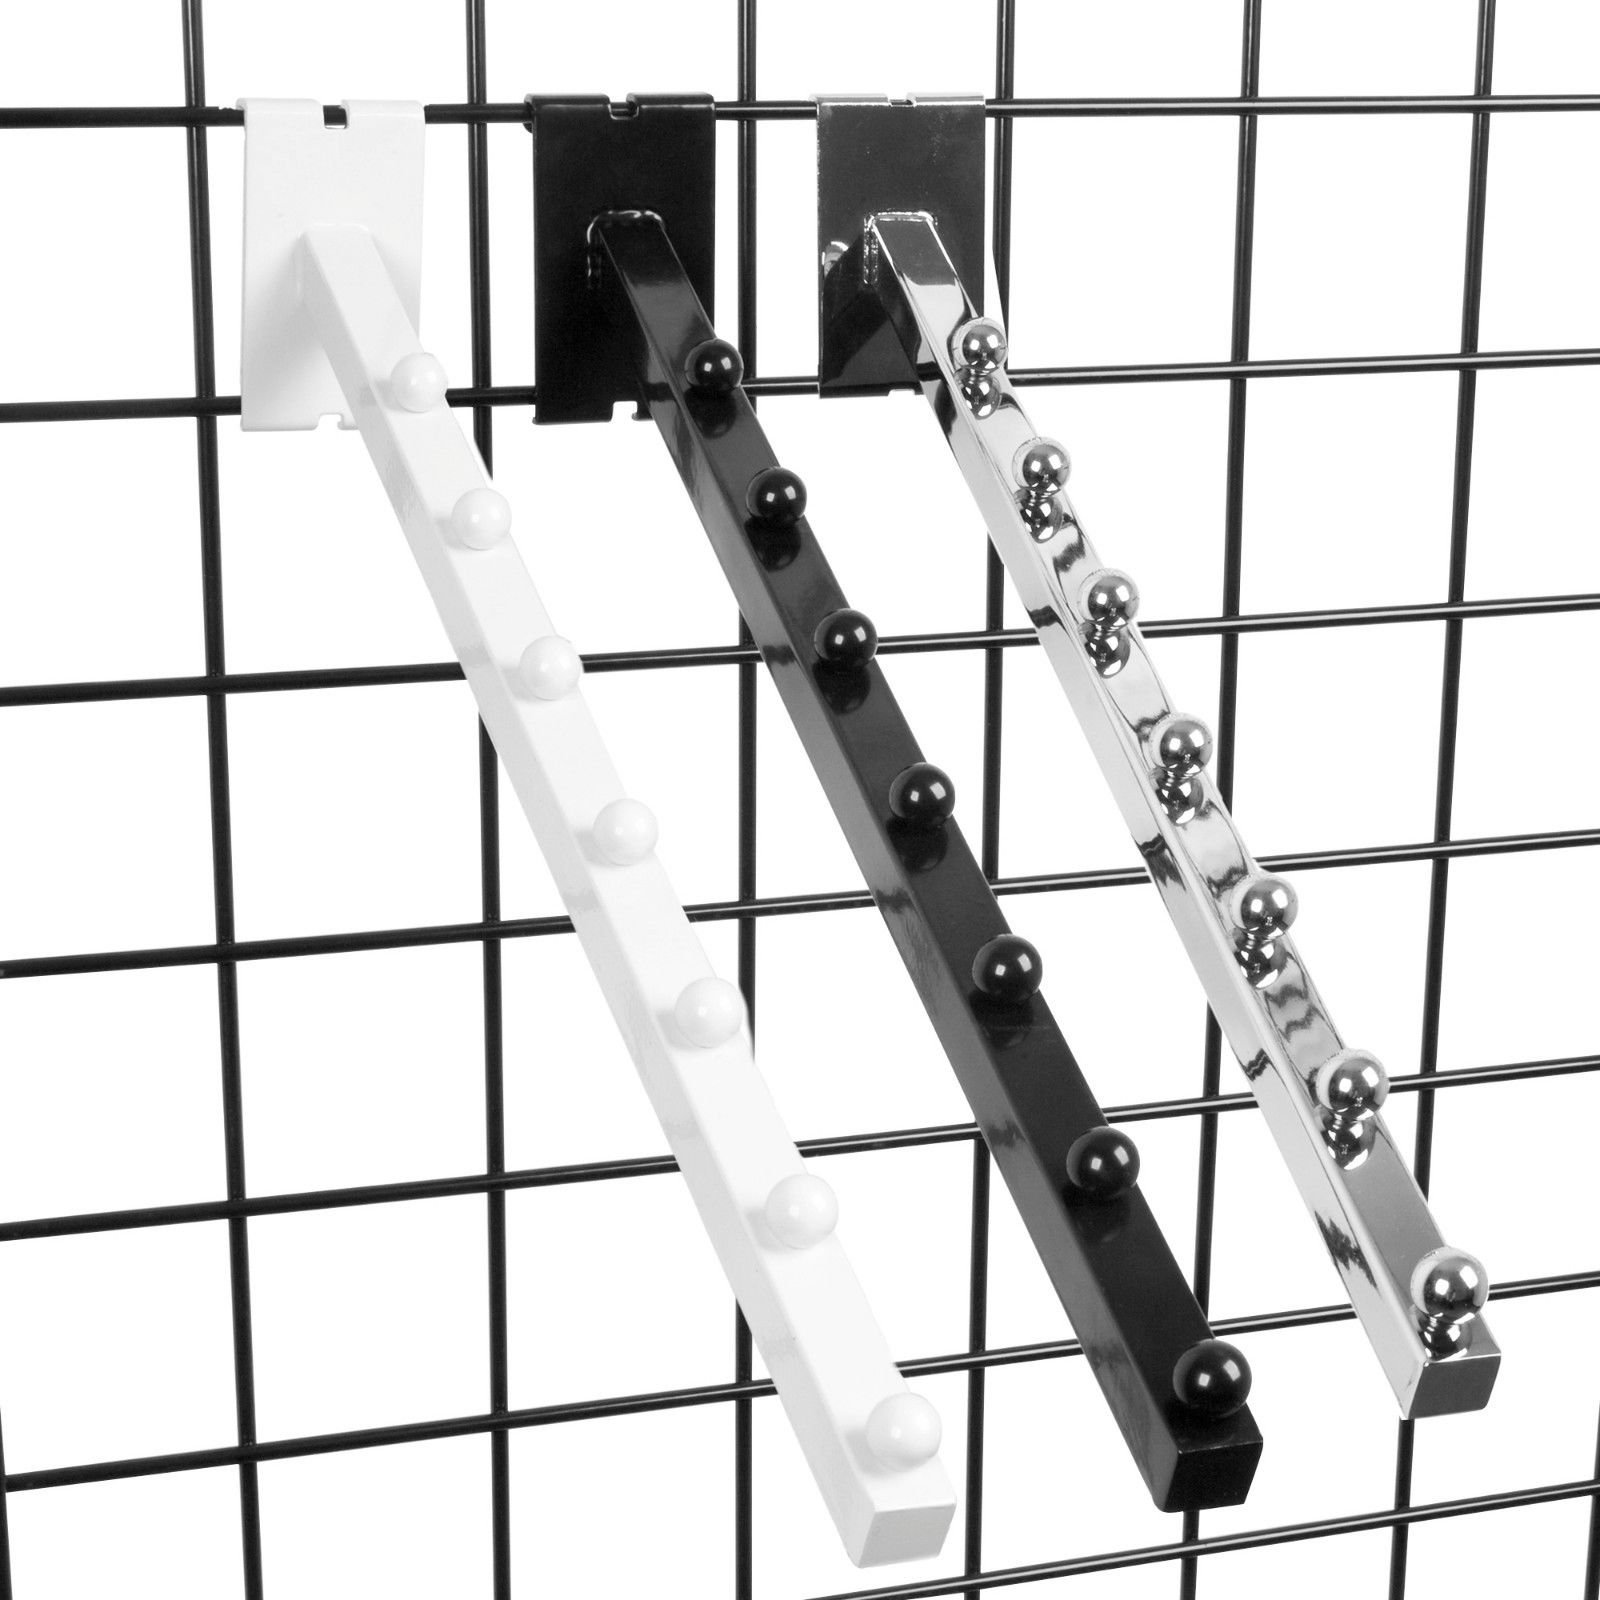 7 Ball Gridwall Waterfall - 18'' L Square Tube Faceout Hook for Grid Panels - White - 10 Pack